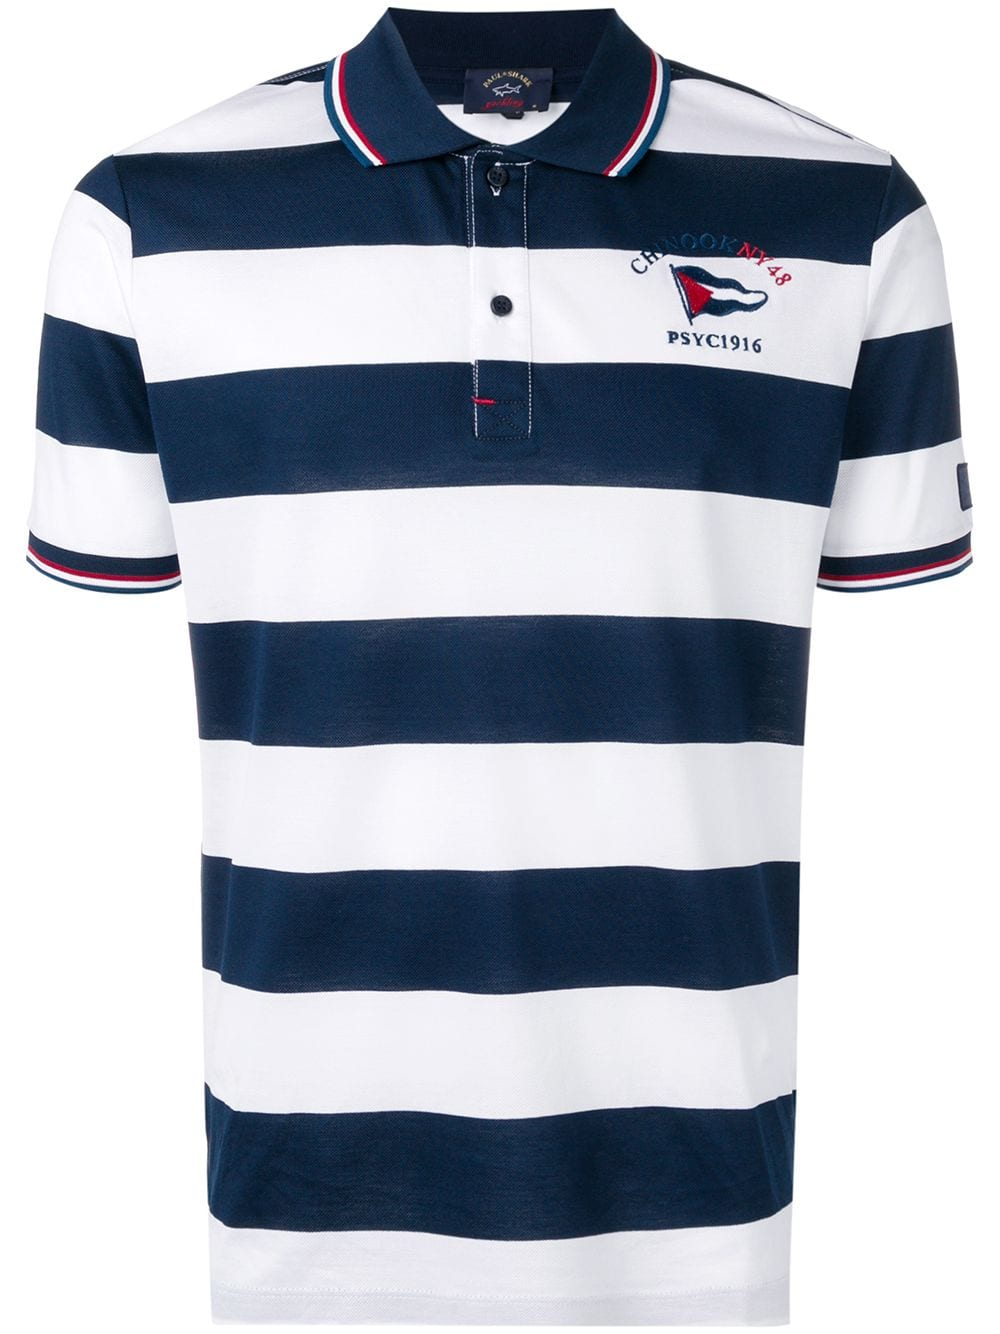 New Mens Short Sleeve Striped Cotton T Shirt Shark Polo Shirt with Embroidered